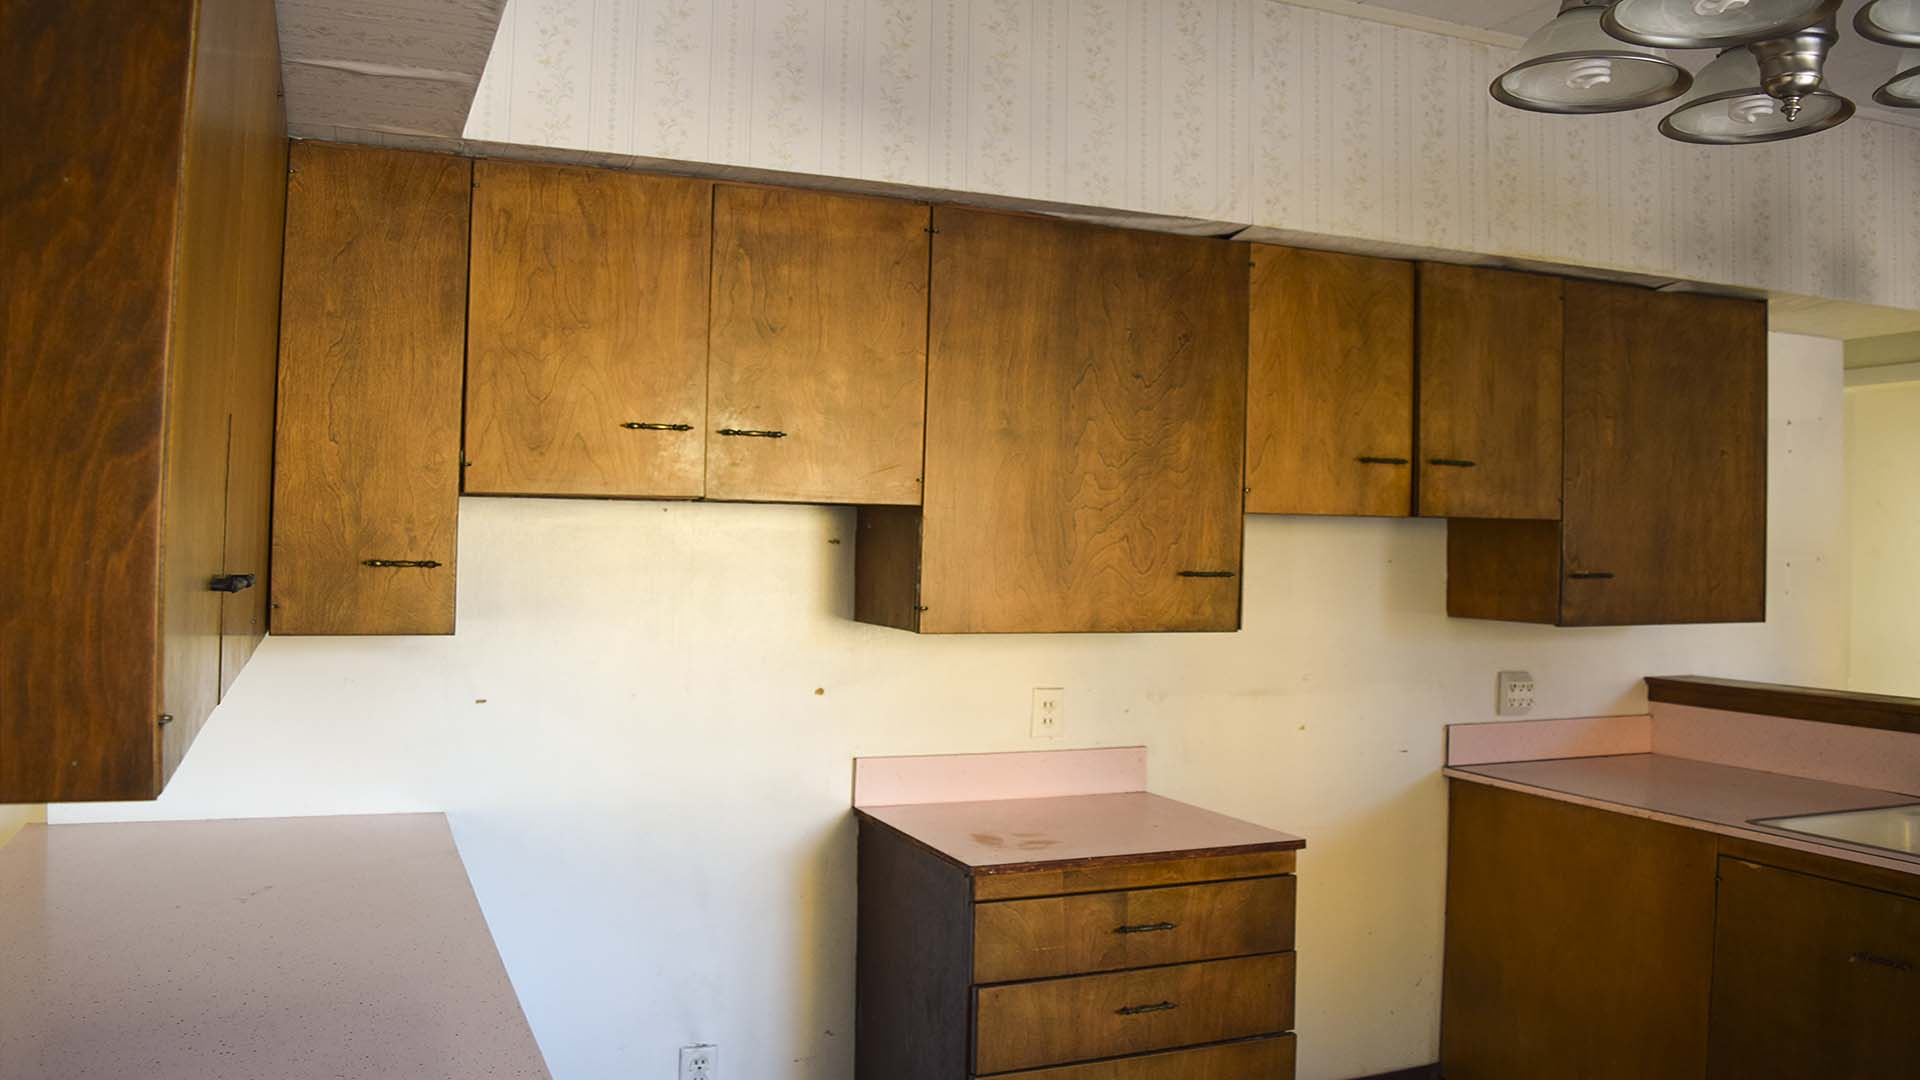 Lots of cabinets. They wiil be good in the garage.